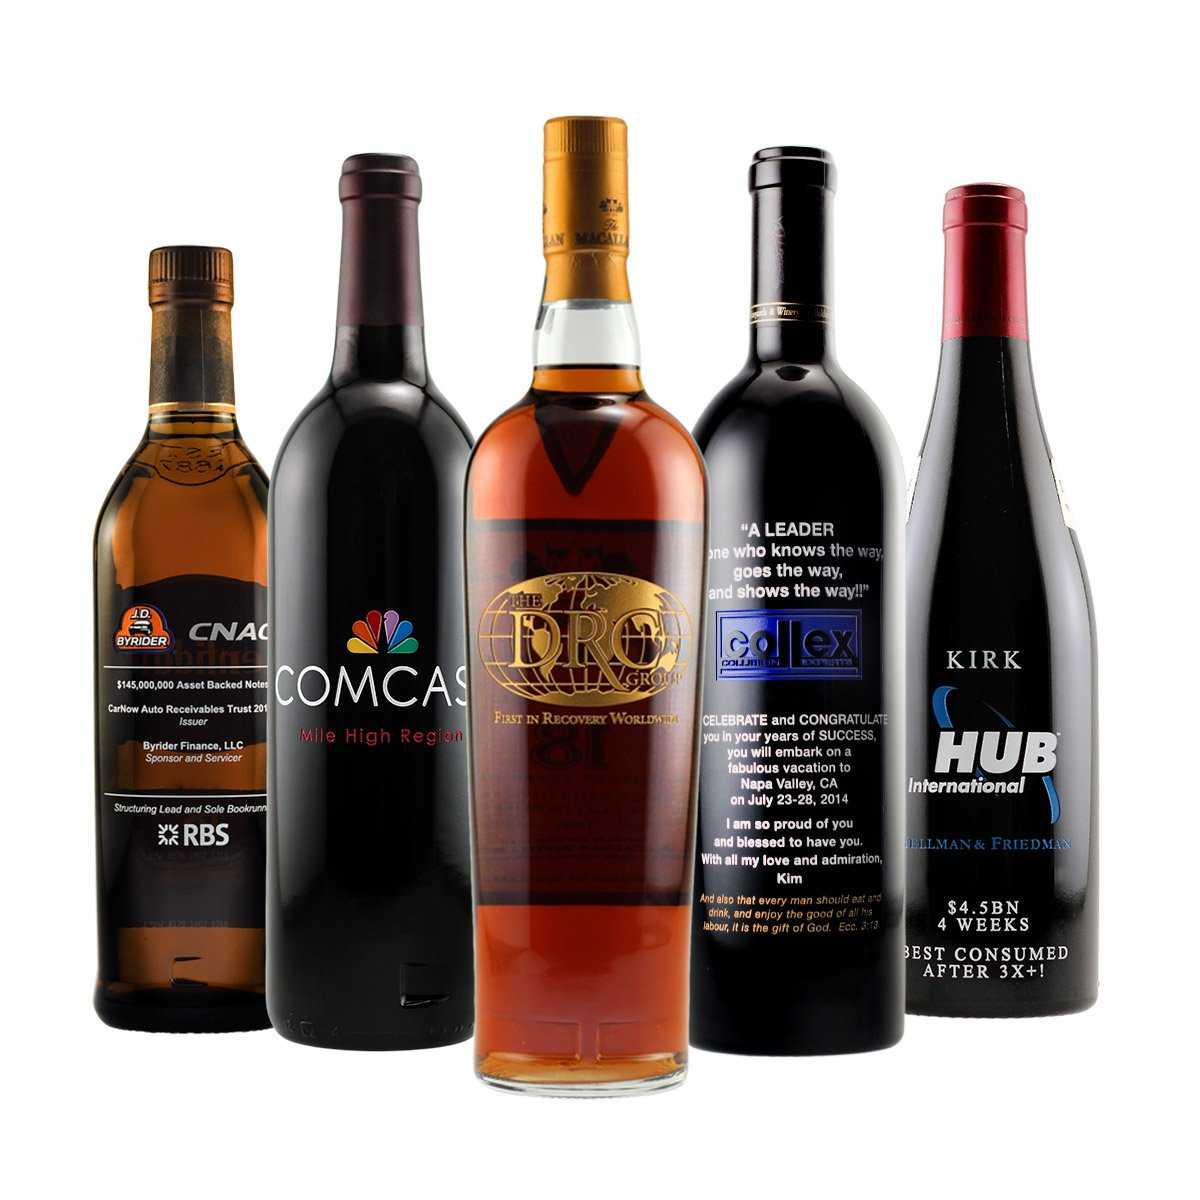 acquisitions and mergers corporate gift with etched wine bottles including red wine white wine and champagne